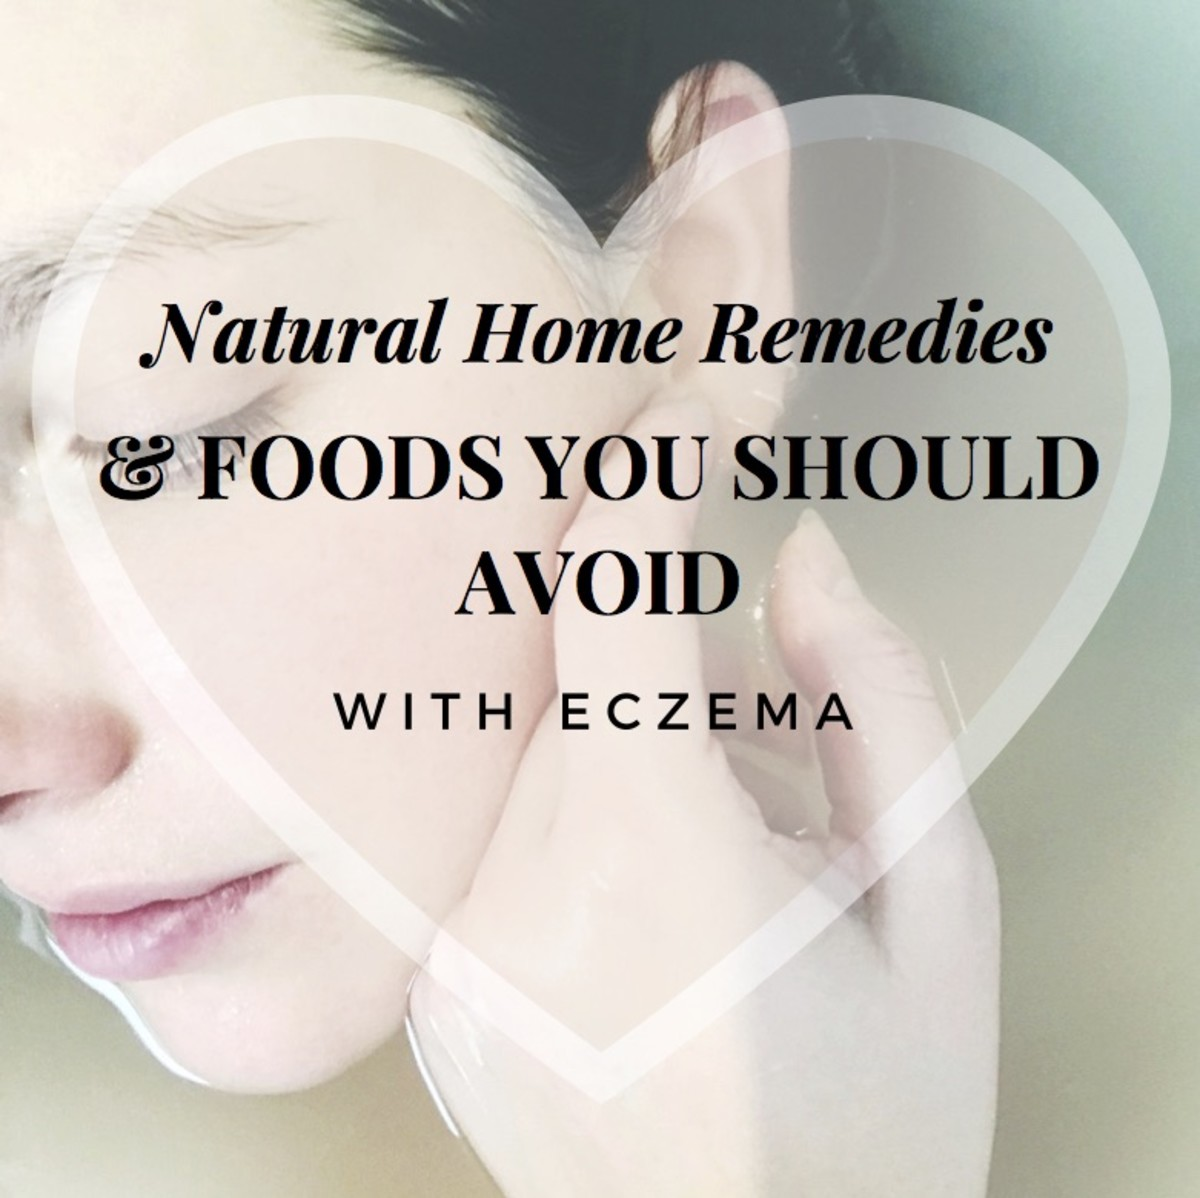 Eczema can be managed properly with dietary changes and natural home remedies.